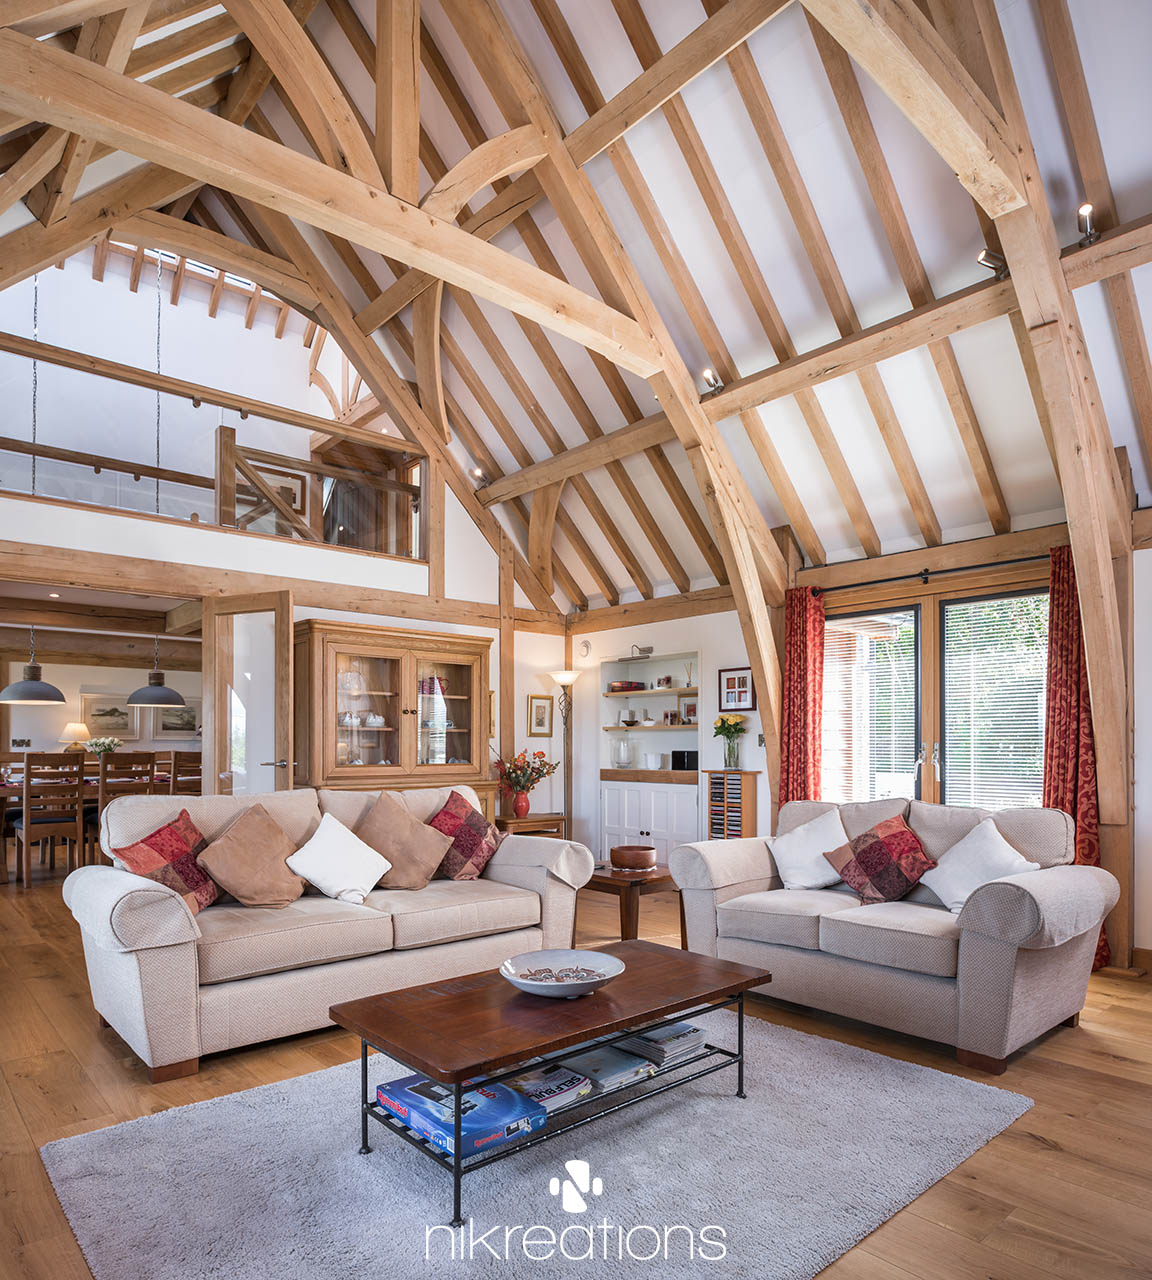 An Oak Frame Home Built For Under 200k: Our Portfolio Of Selected Works